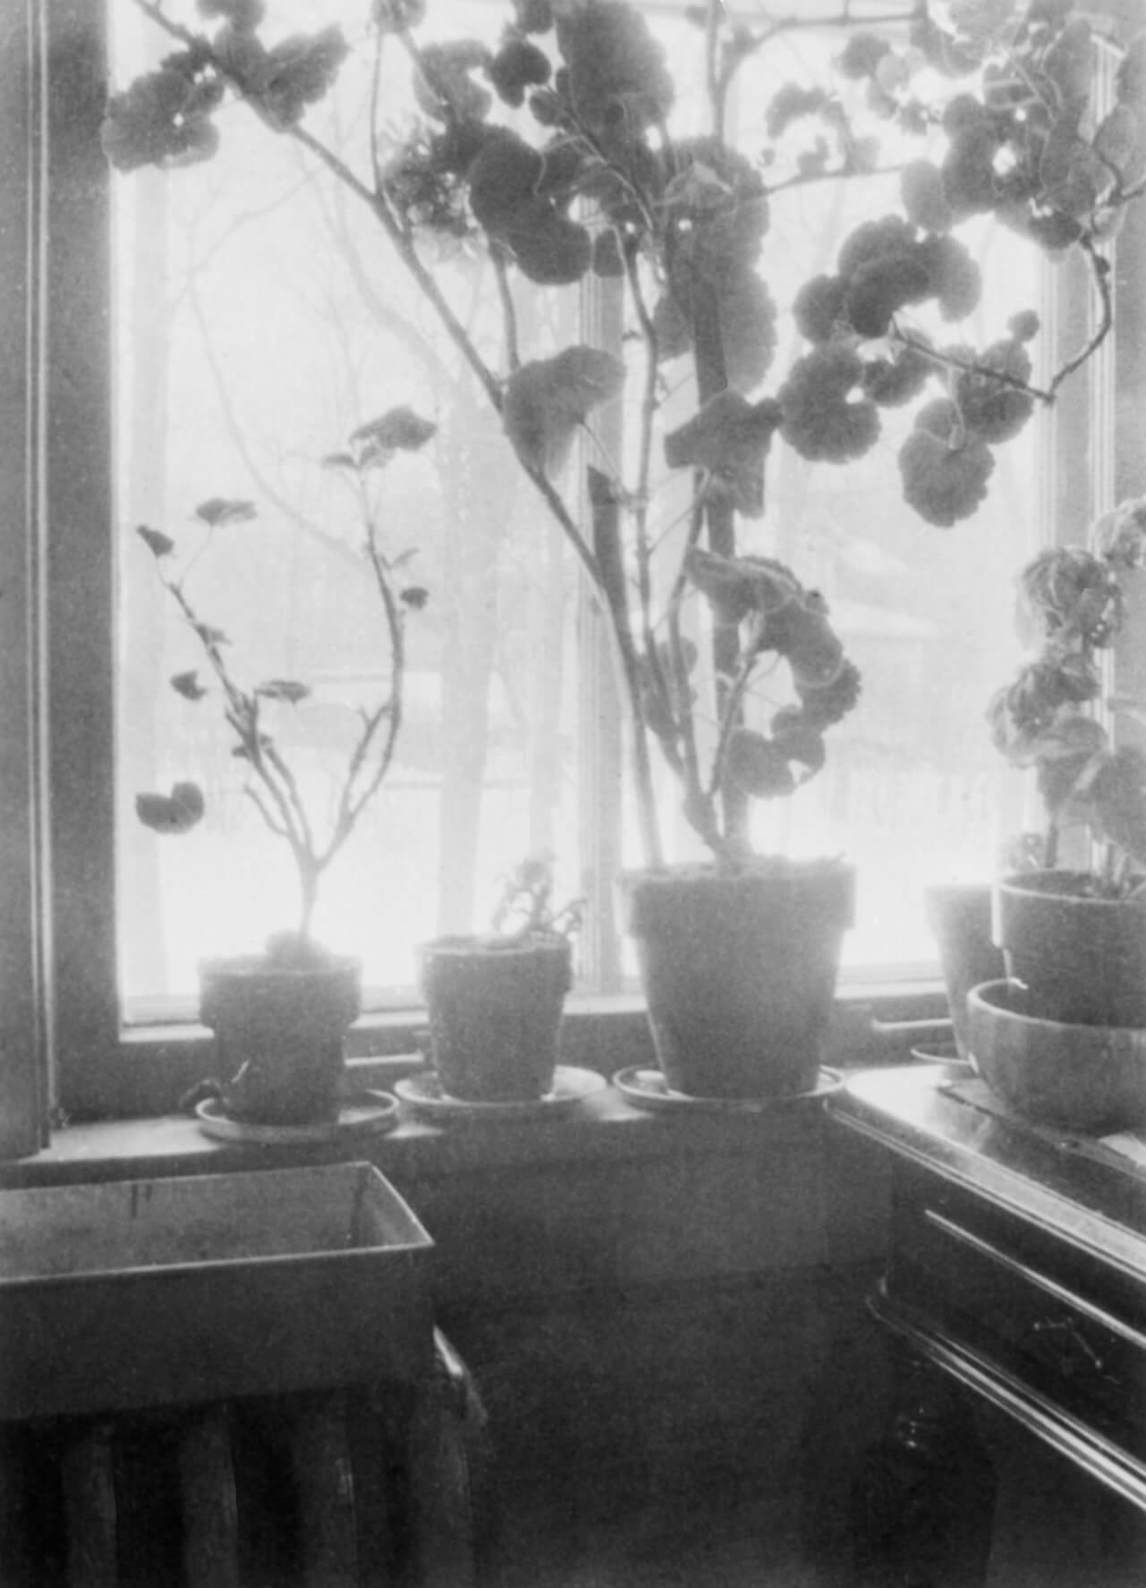 Art Canada Institute, Lionel LeMoine Fitzgerald, Geraniums on a window sill, photograph, 1943